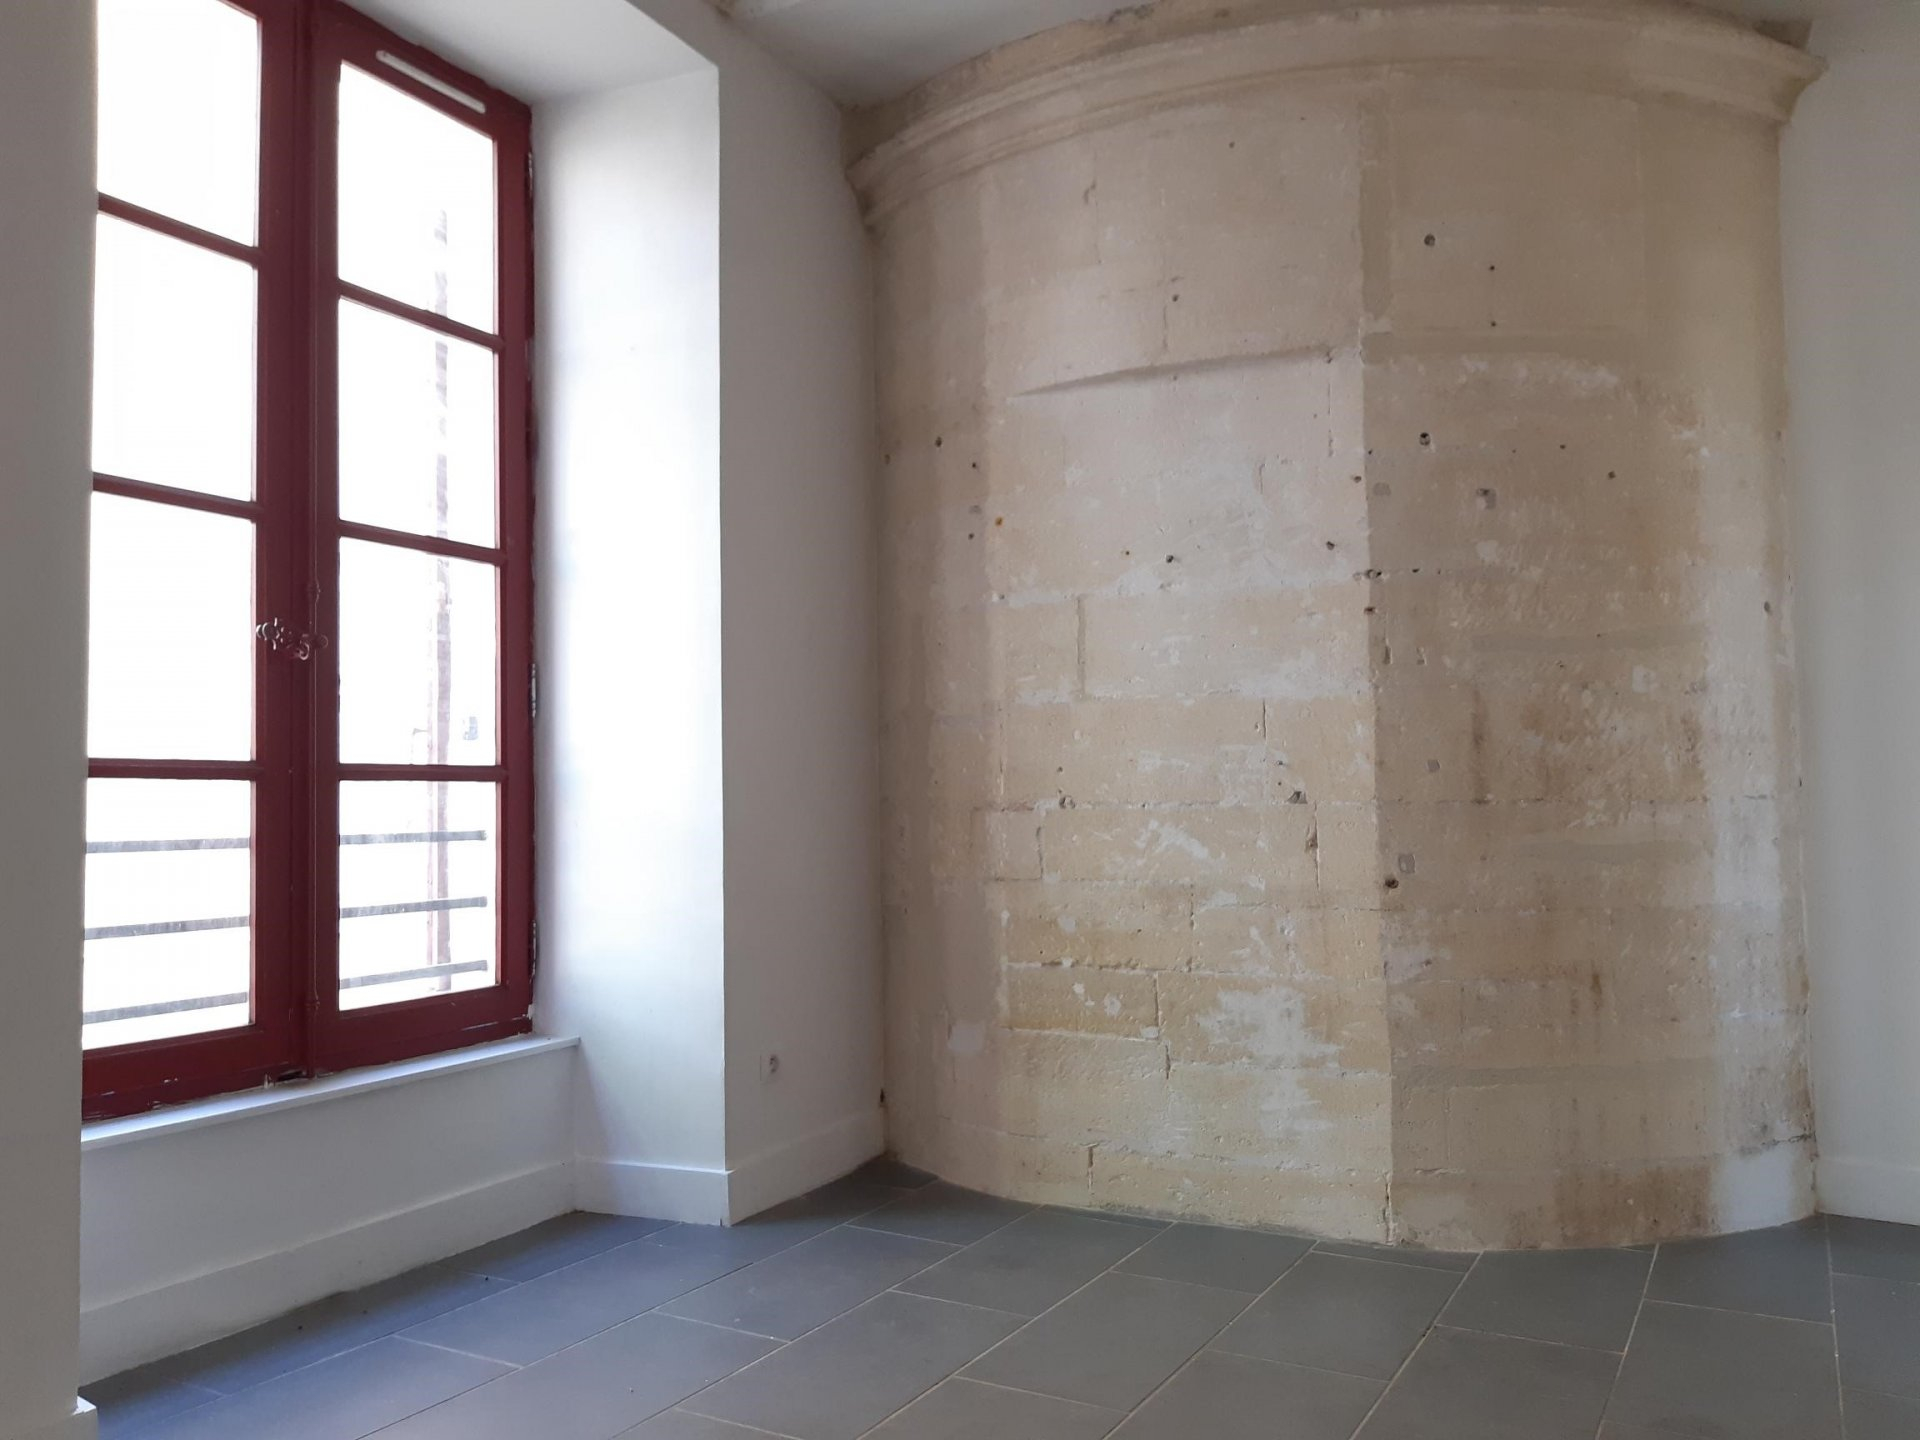 Location Appartement BEAUCAIRE surface habitable de 48 m²